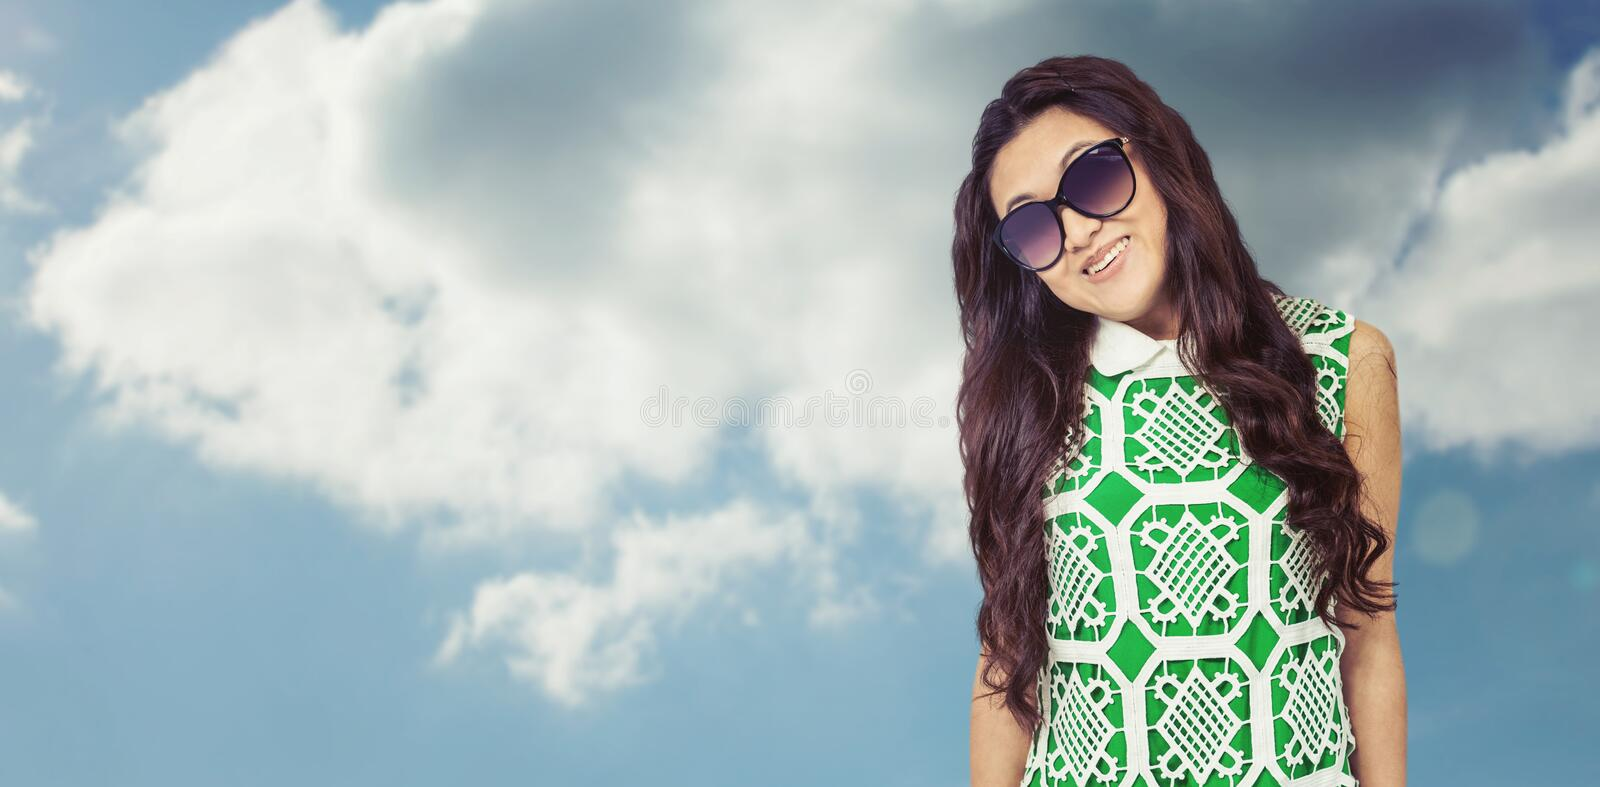 Composite image of asian woman with sunglasses posing for camera royalty free stock photography